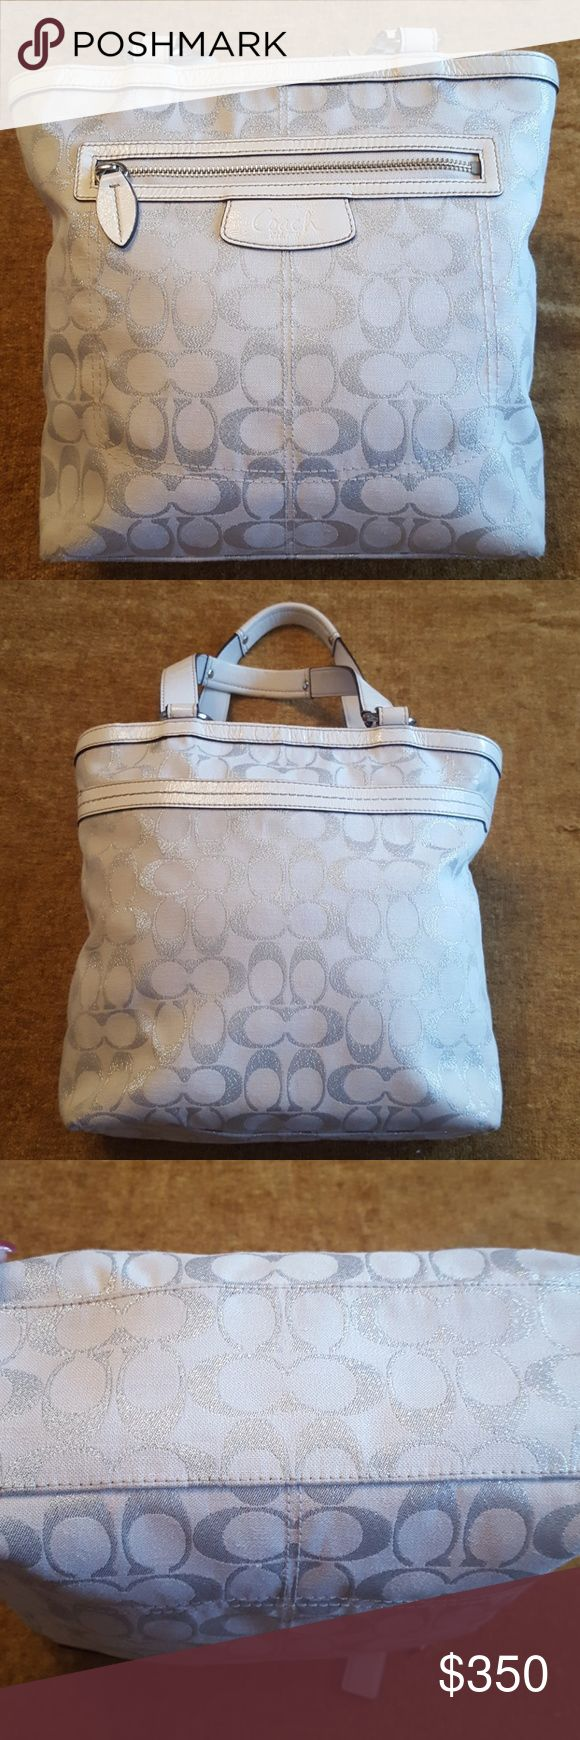 NWT COACH EMBELLISHED SILVER COACH LARGE HANDBAG NWT COACH HANDBAG, COLORS ARE OFF-WHITE  BASE COLOR WITH EMBELLISHMENTS OF THE COACH LOGO IN SHINY SILVER THREADING TO MAKE IT SPARKLE☄. IT HAS LAVENDER SATIN INSIDE LINING WITH A DEEP ZIPPER POCKET & 2 OTHER POCKETS. ON THE OUTSIDE IT HAS A LARGE DEEP POCKET IN THE BACK & A DEEP ZIPPER POCKET ON THE FRONT BY THE LOGO. ALL THE ACCENTS ARE SILVER OR LEATHER. DIMENSIONS ARE 16×14×4. CAN CARRY TONS OF THINGS IN THIS MY DEAR. I BOUGHT IT IN NEW…